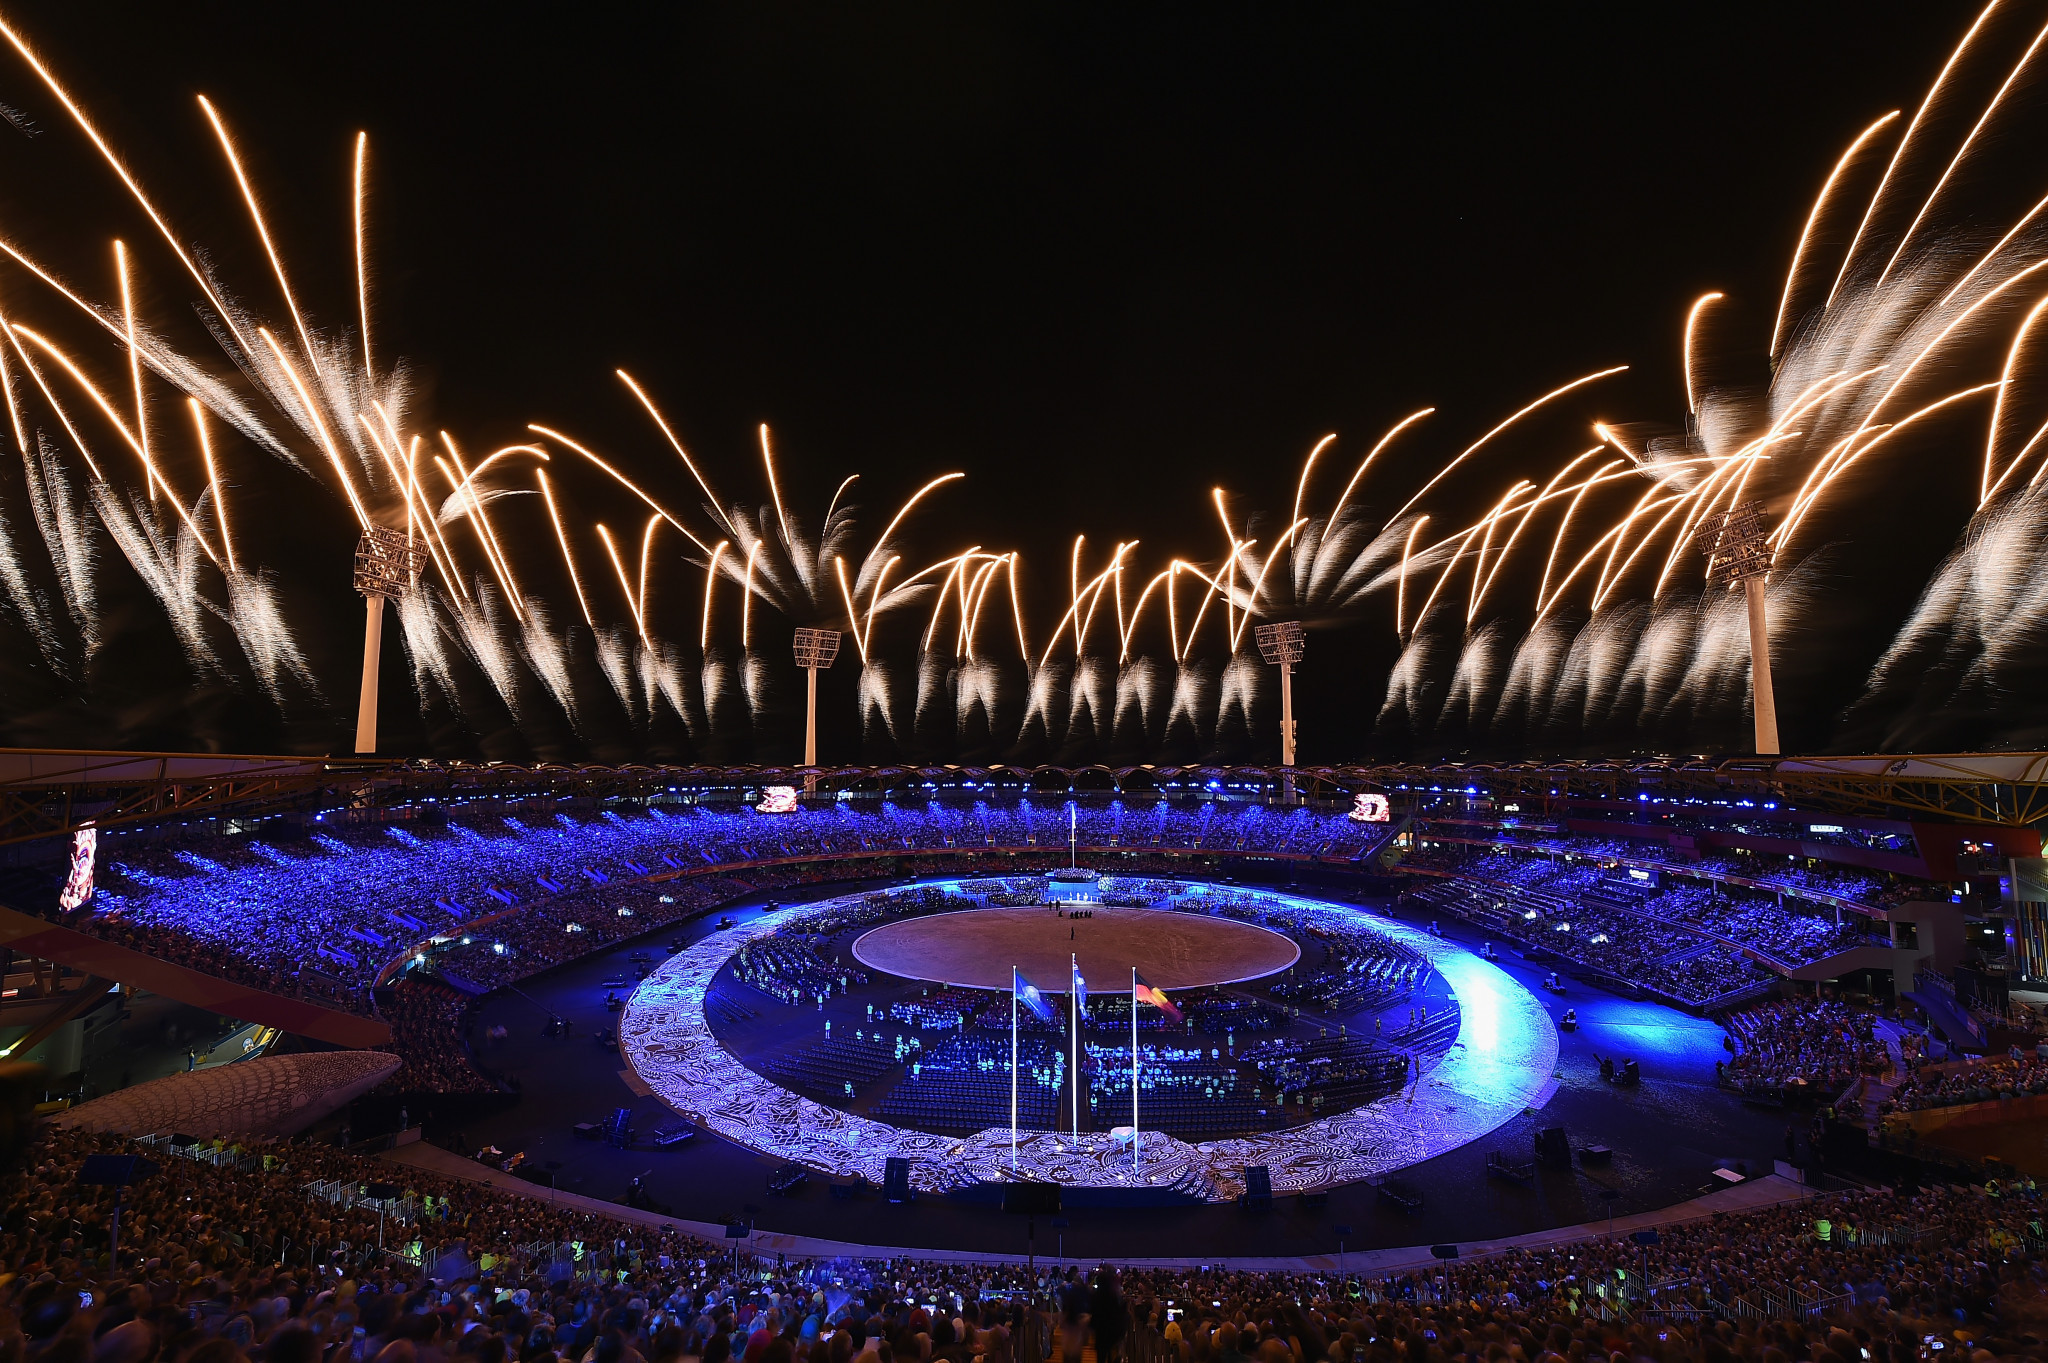 Exclusive: Commonwealth Games to downsize after Birmingham 2022